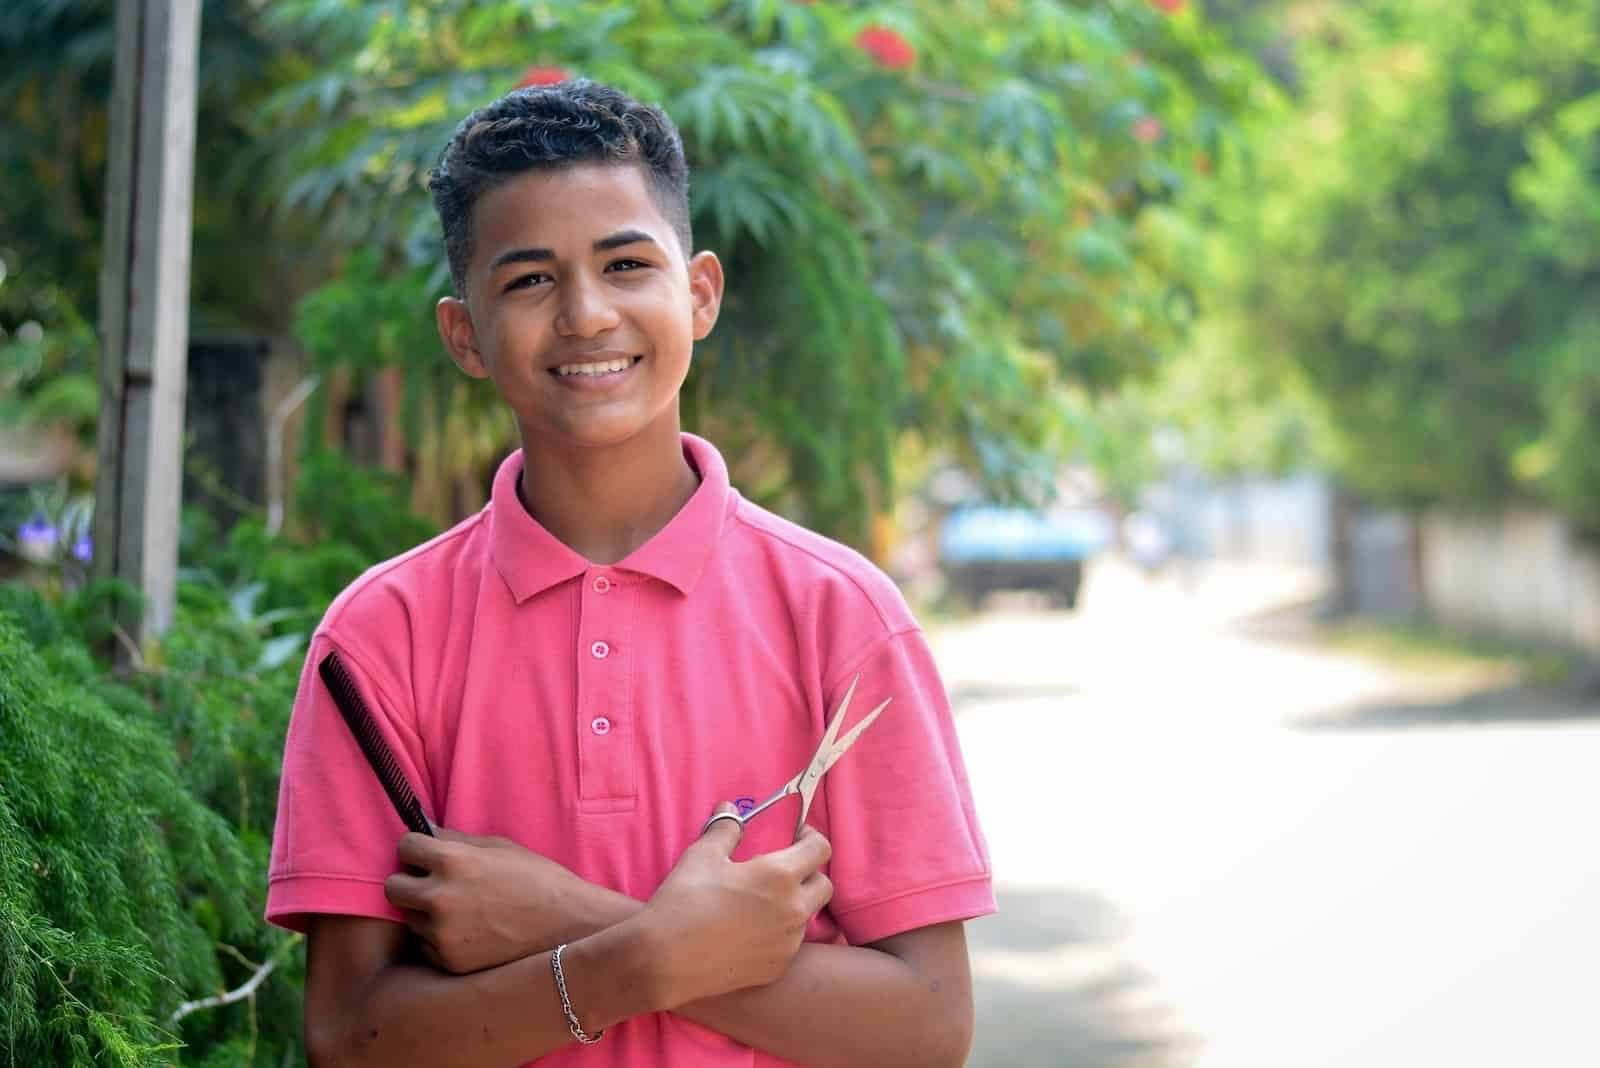 A boy wearing a pink shirt stands, smiling, with his arms crossed holding scissors in one hand and a comb in the other, standing on a street.